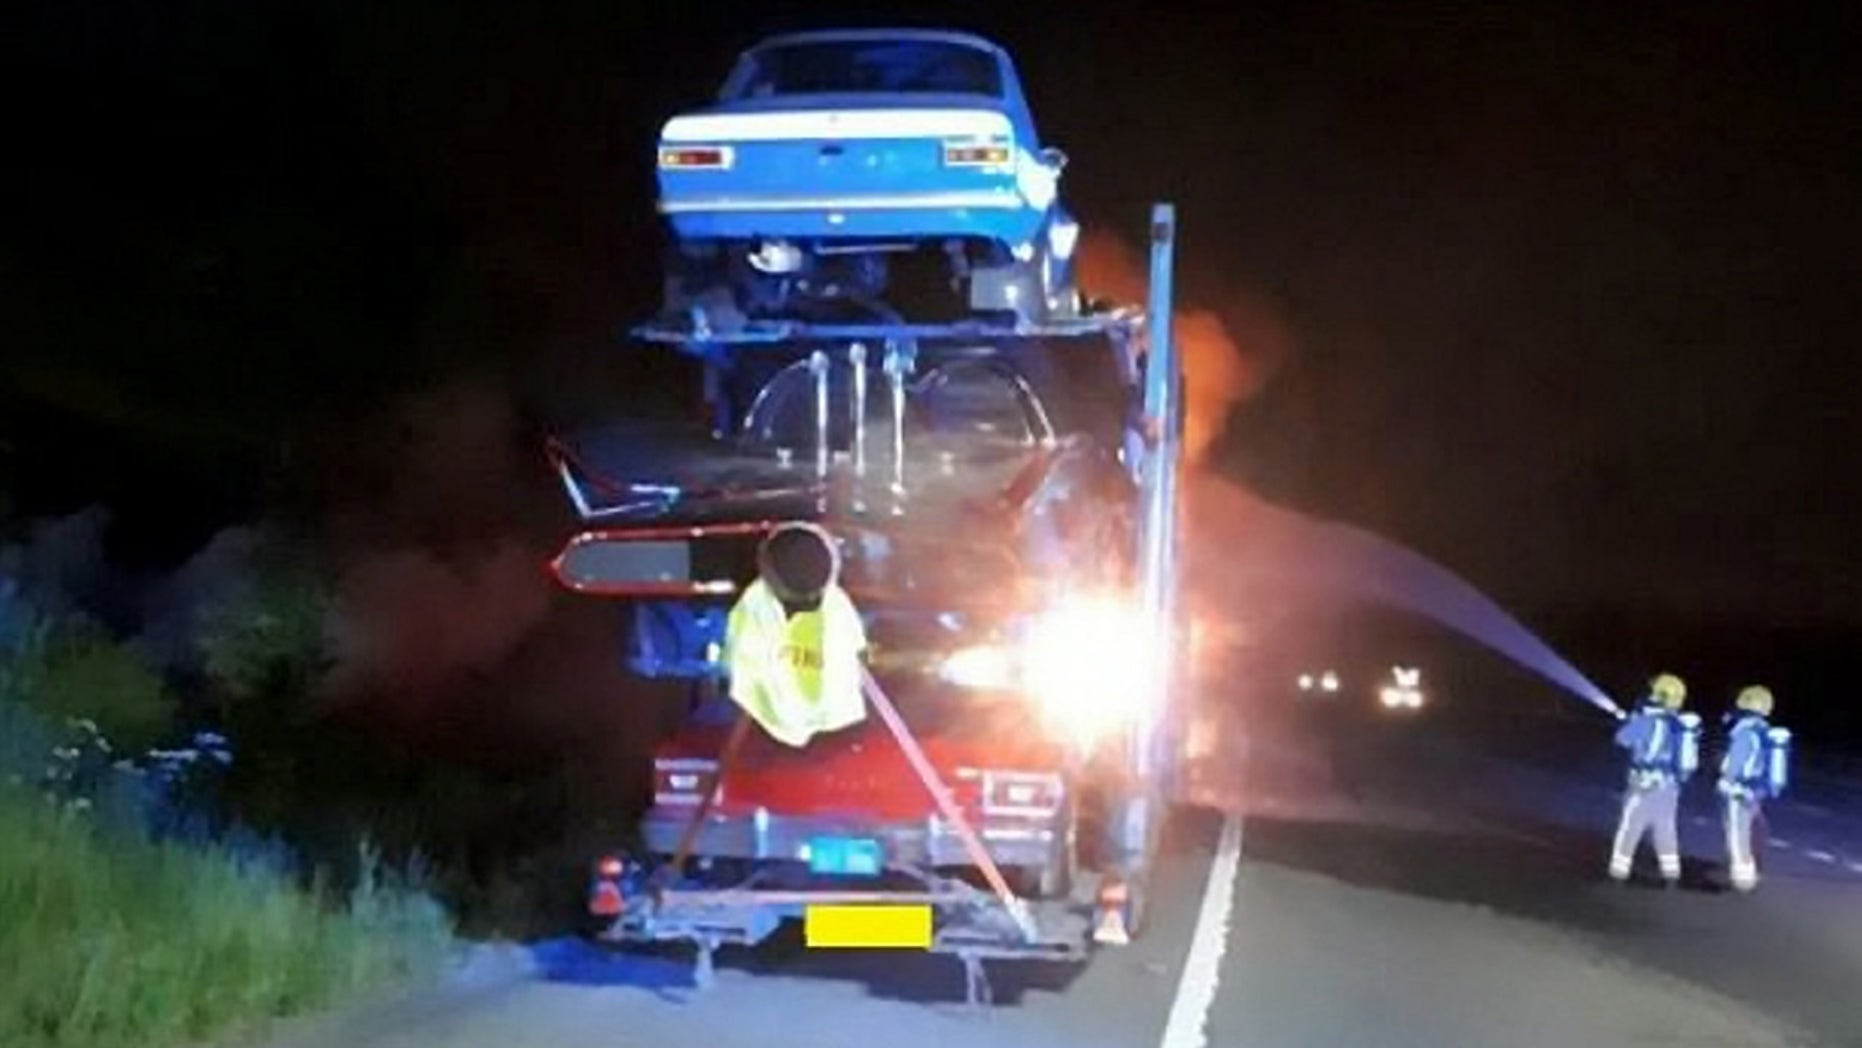 A transporter carrying a dozen novelty cars including a BATMOBILE caught fire - burning a number of vintage vehicle to bits. See SWNS story SWFIRE; The lorry was travelling westbound on the M4 near Bath on Wednesday night when it went up in flames. Highways England was forced to shut two lanes of the motorway as firefighters battled the blaze into the early hours of Thursday. It is not know the extent of damage the cars suffered, but Highways England said a number of the specialists cars along with the transporter cab had been destroyed. The truck had been transporting a number of classic cars including a 'Dukes of Hazzard' General Lee, Batmobile, 'Transformers' Ford Mustang and 'Starsky and Hutch' Ford Torino.